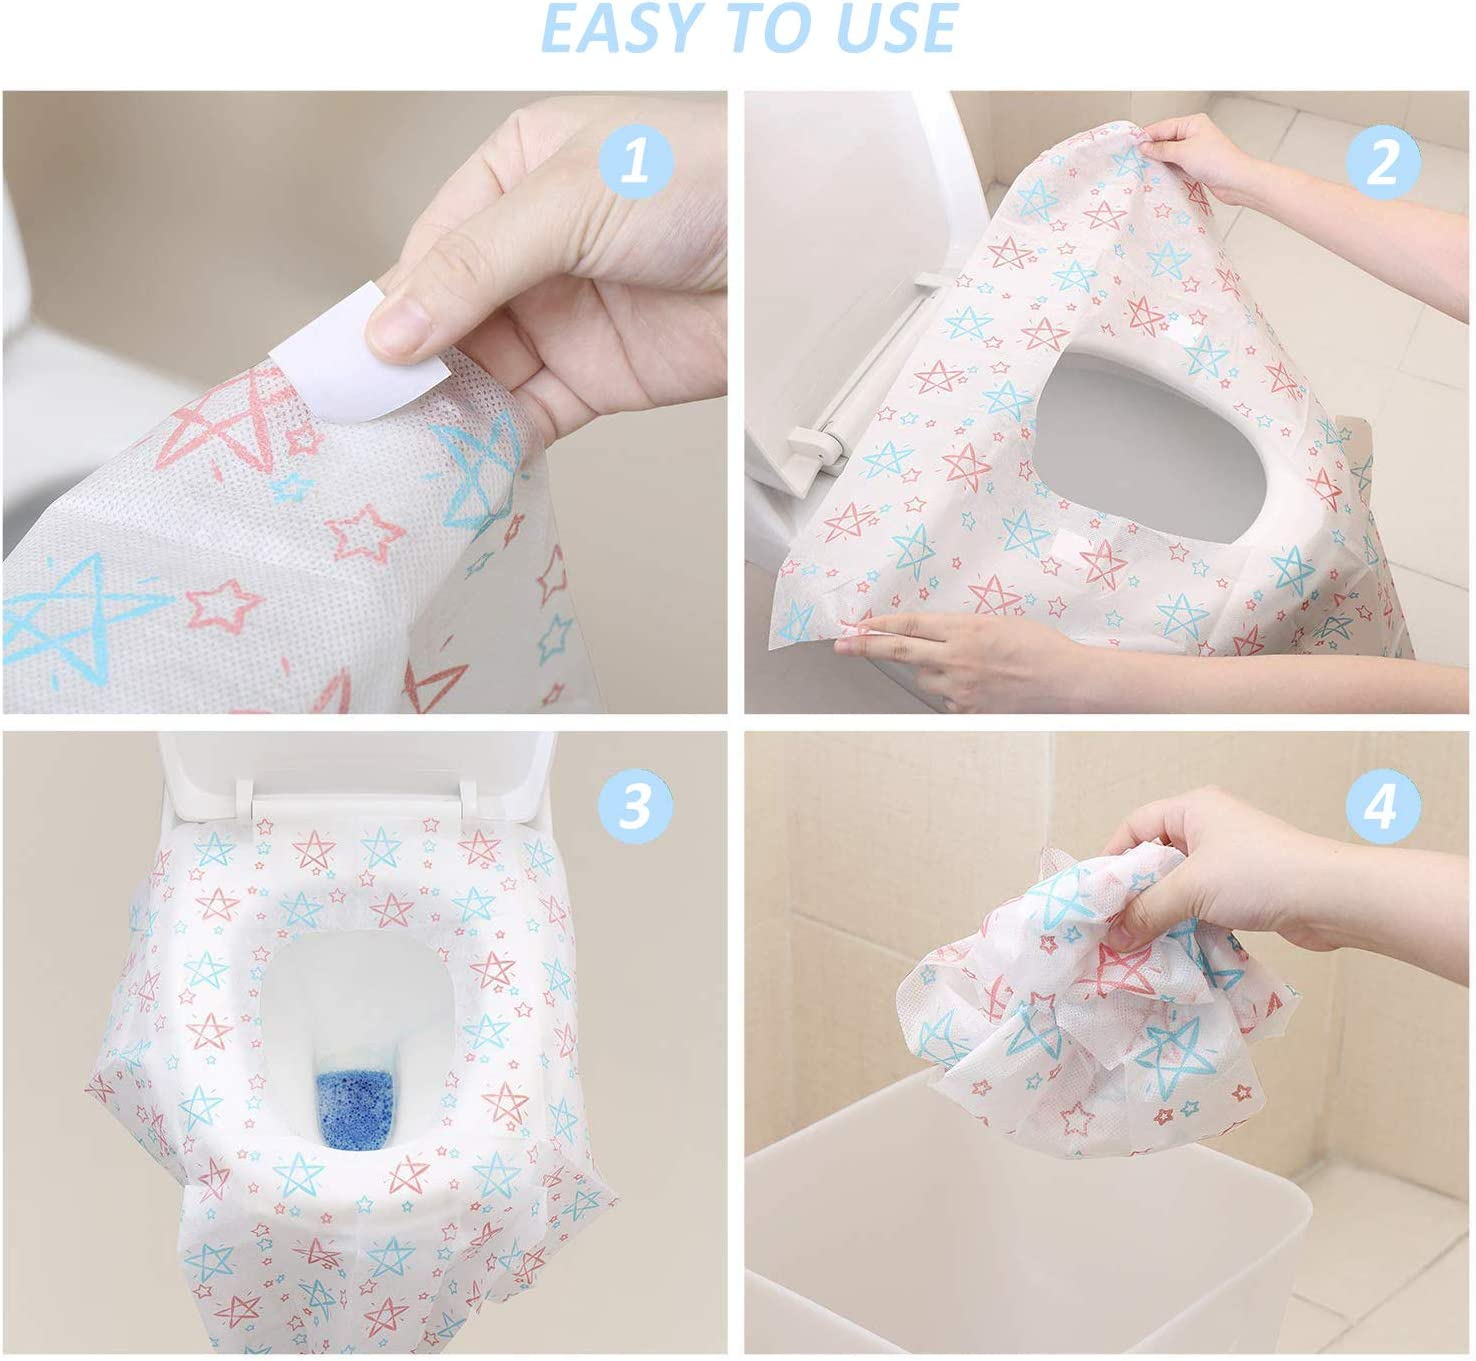 20 Packs Pregnant Full Cover Disposable Toilet Seat Covers Individually Wrapped Portable Potty Shields for Adult XL Large Travel Toilet Potty Seat Covers Kids and Toddler Potty Training